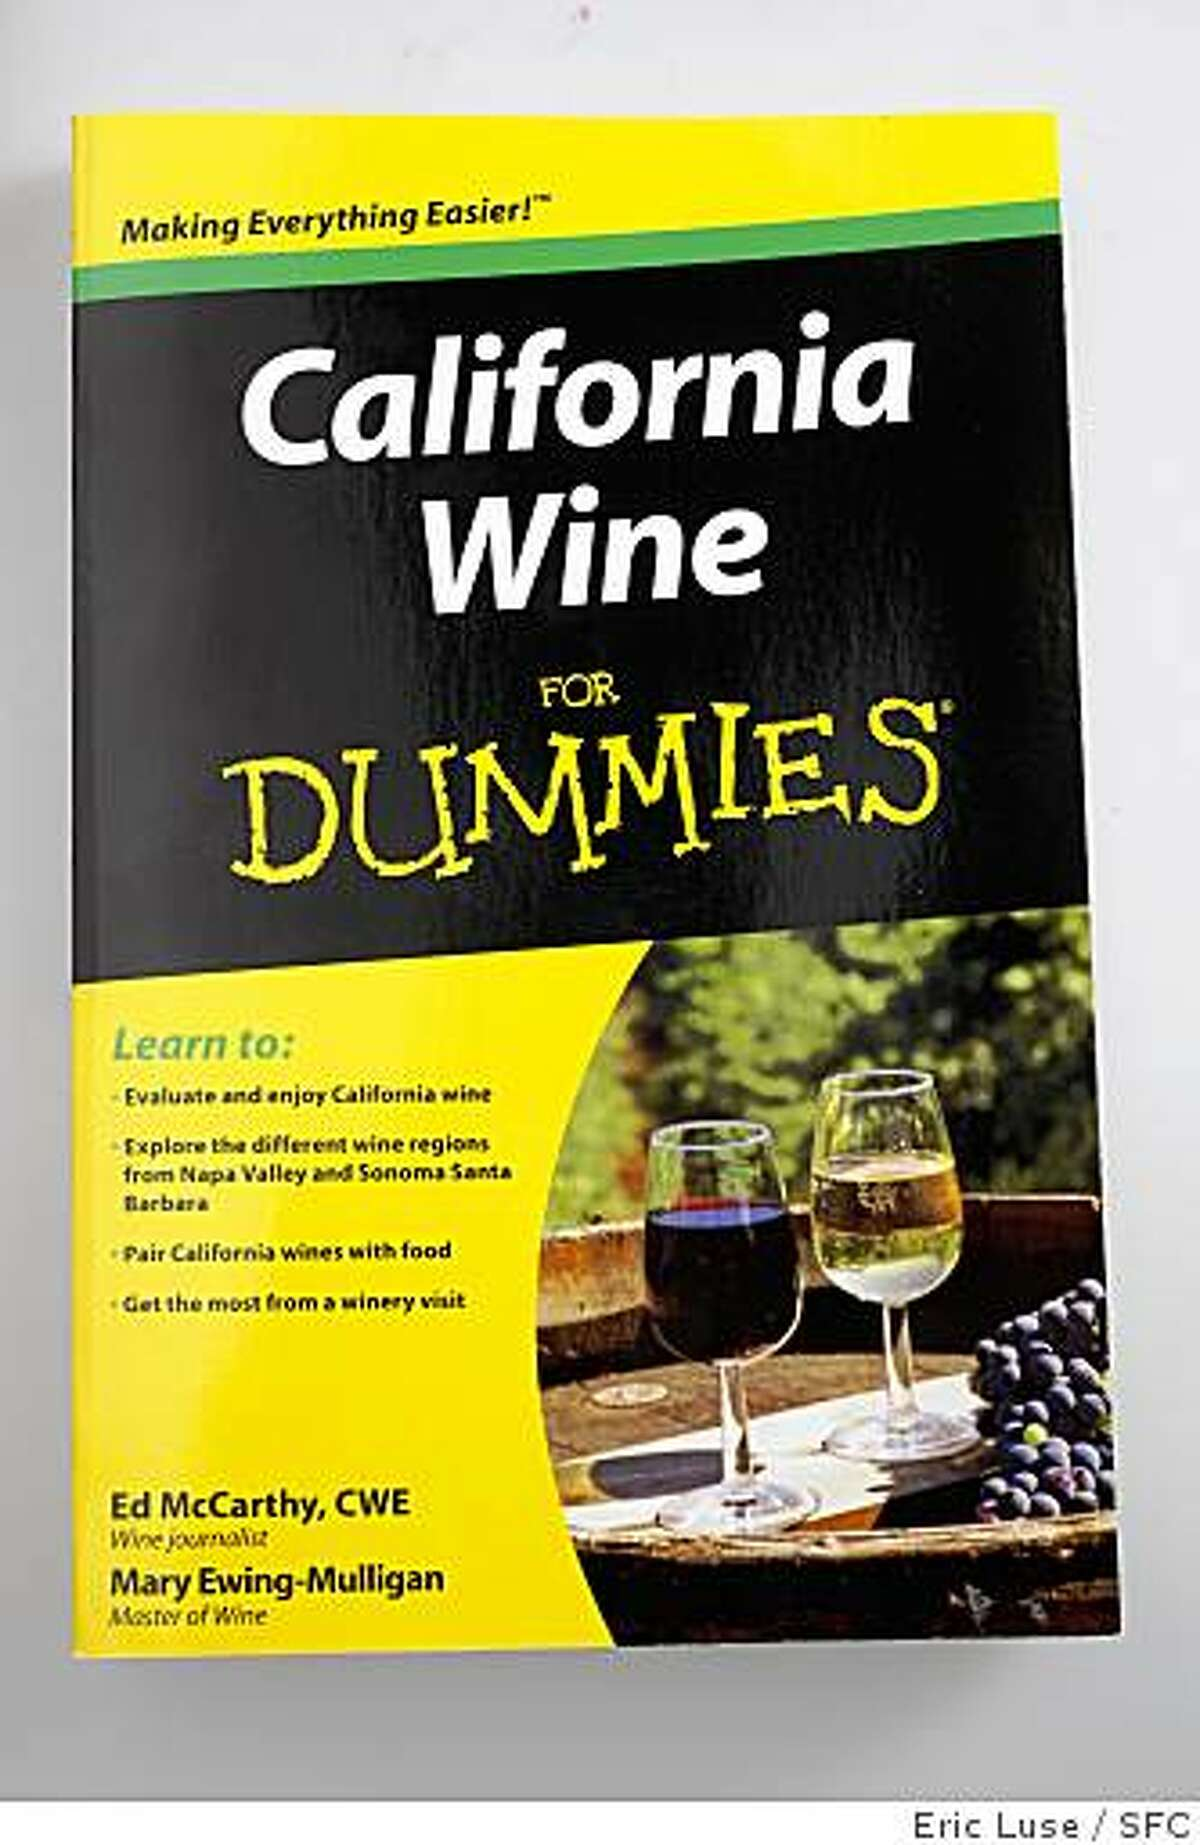 California Wine for Dummies wine book photographed on Thursday, June 11, 2009.